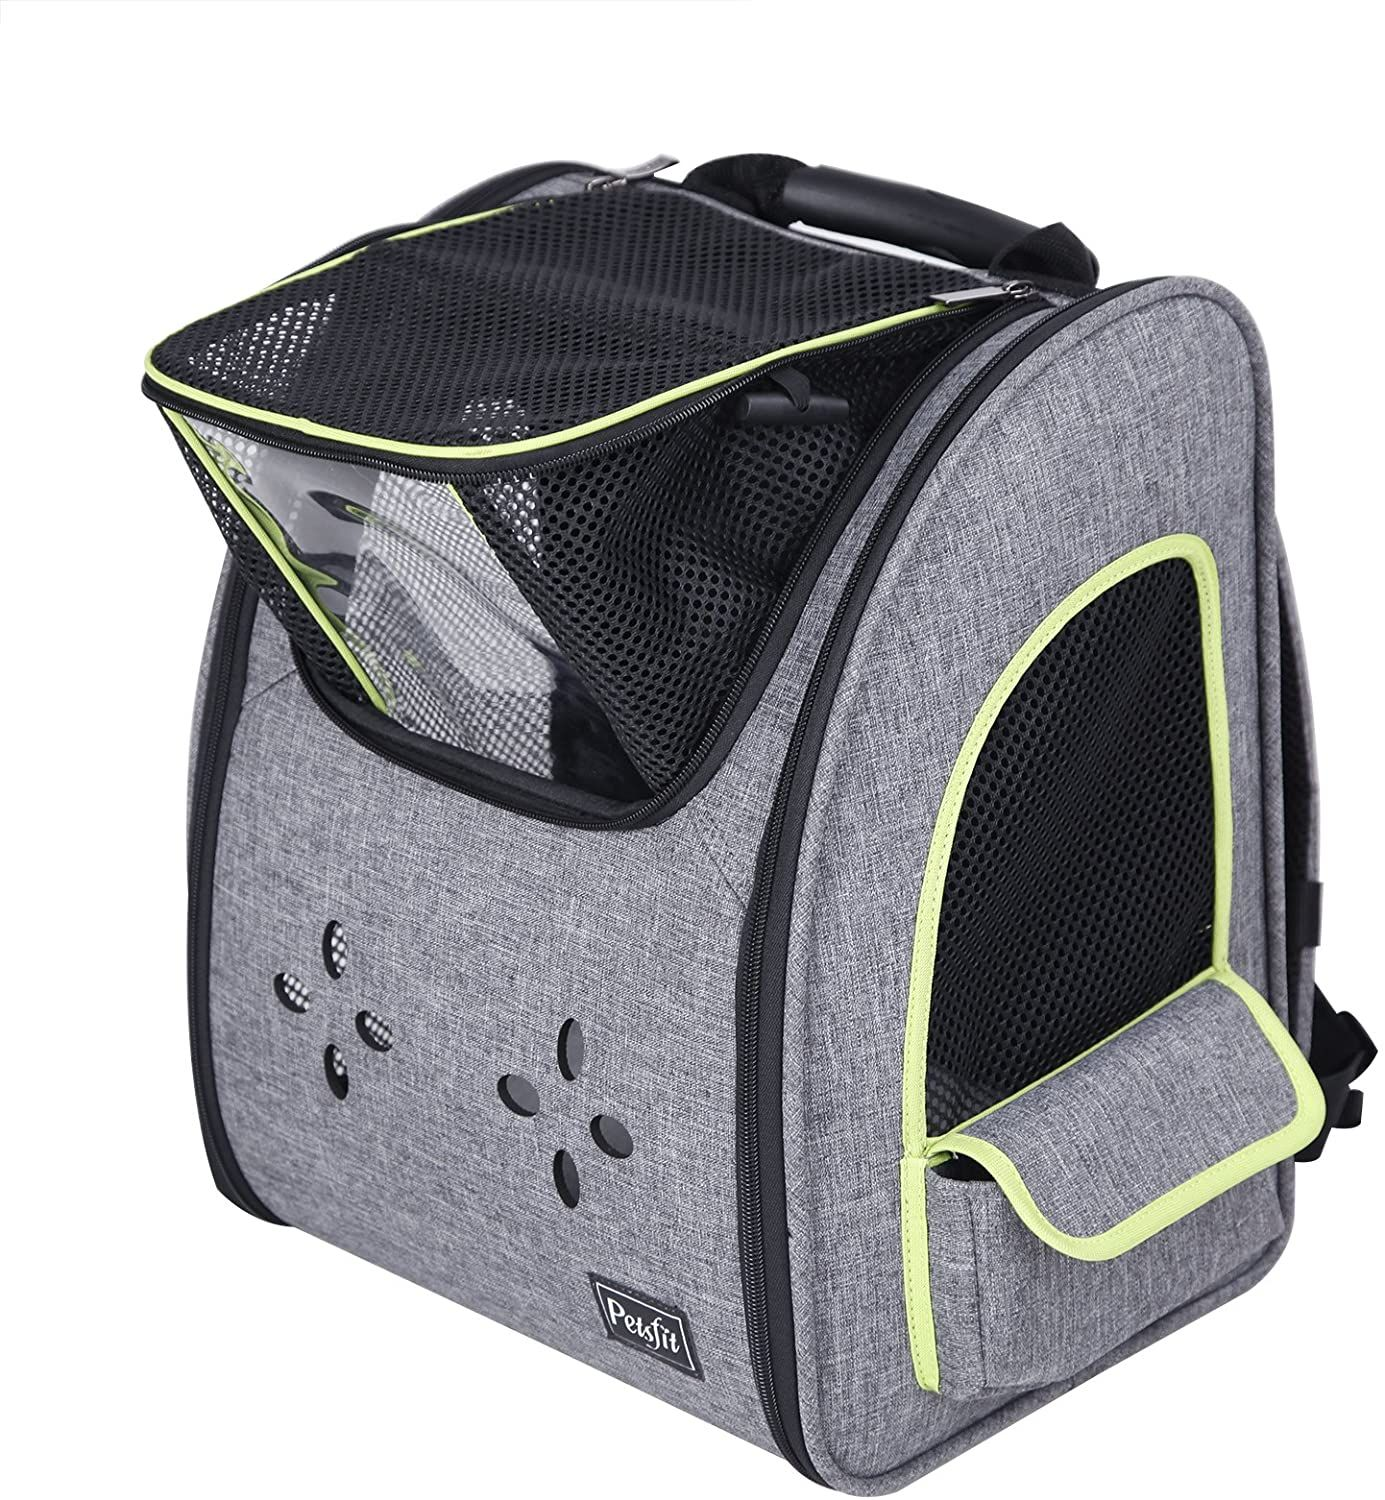 petsfit dogs carriers backpack for cat durable and comfortable pet bag